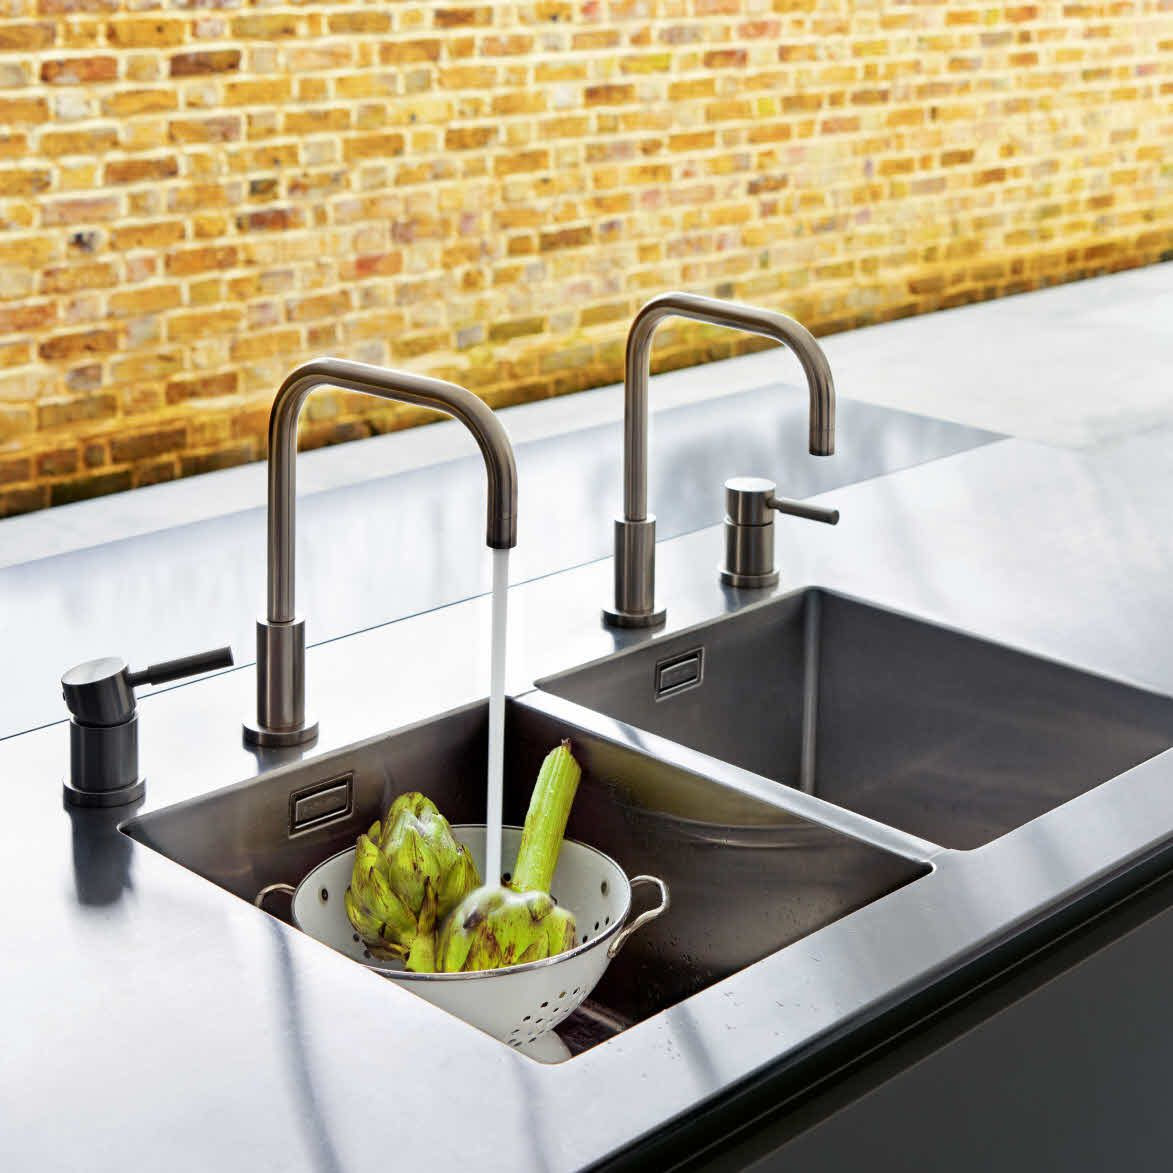 Double sink and faucets built in a Quarella